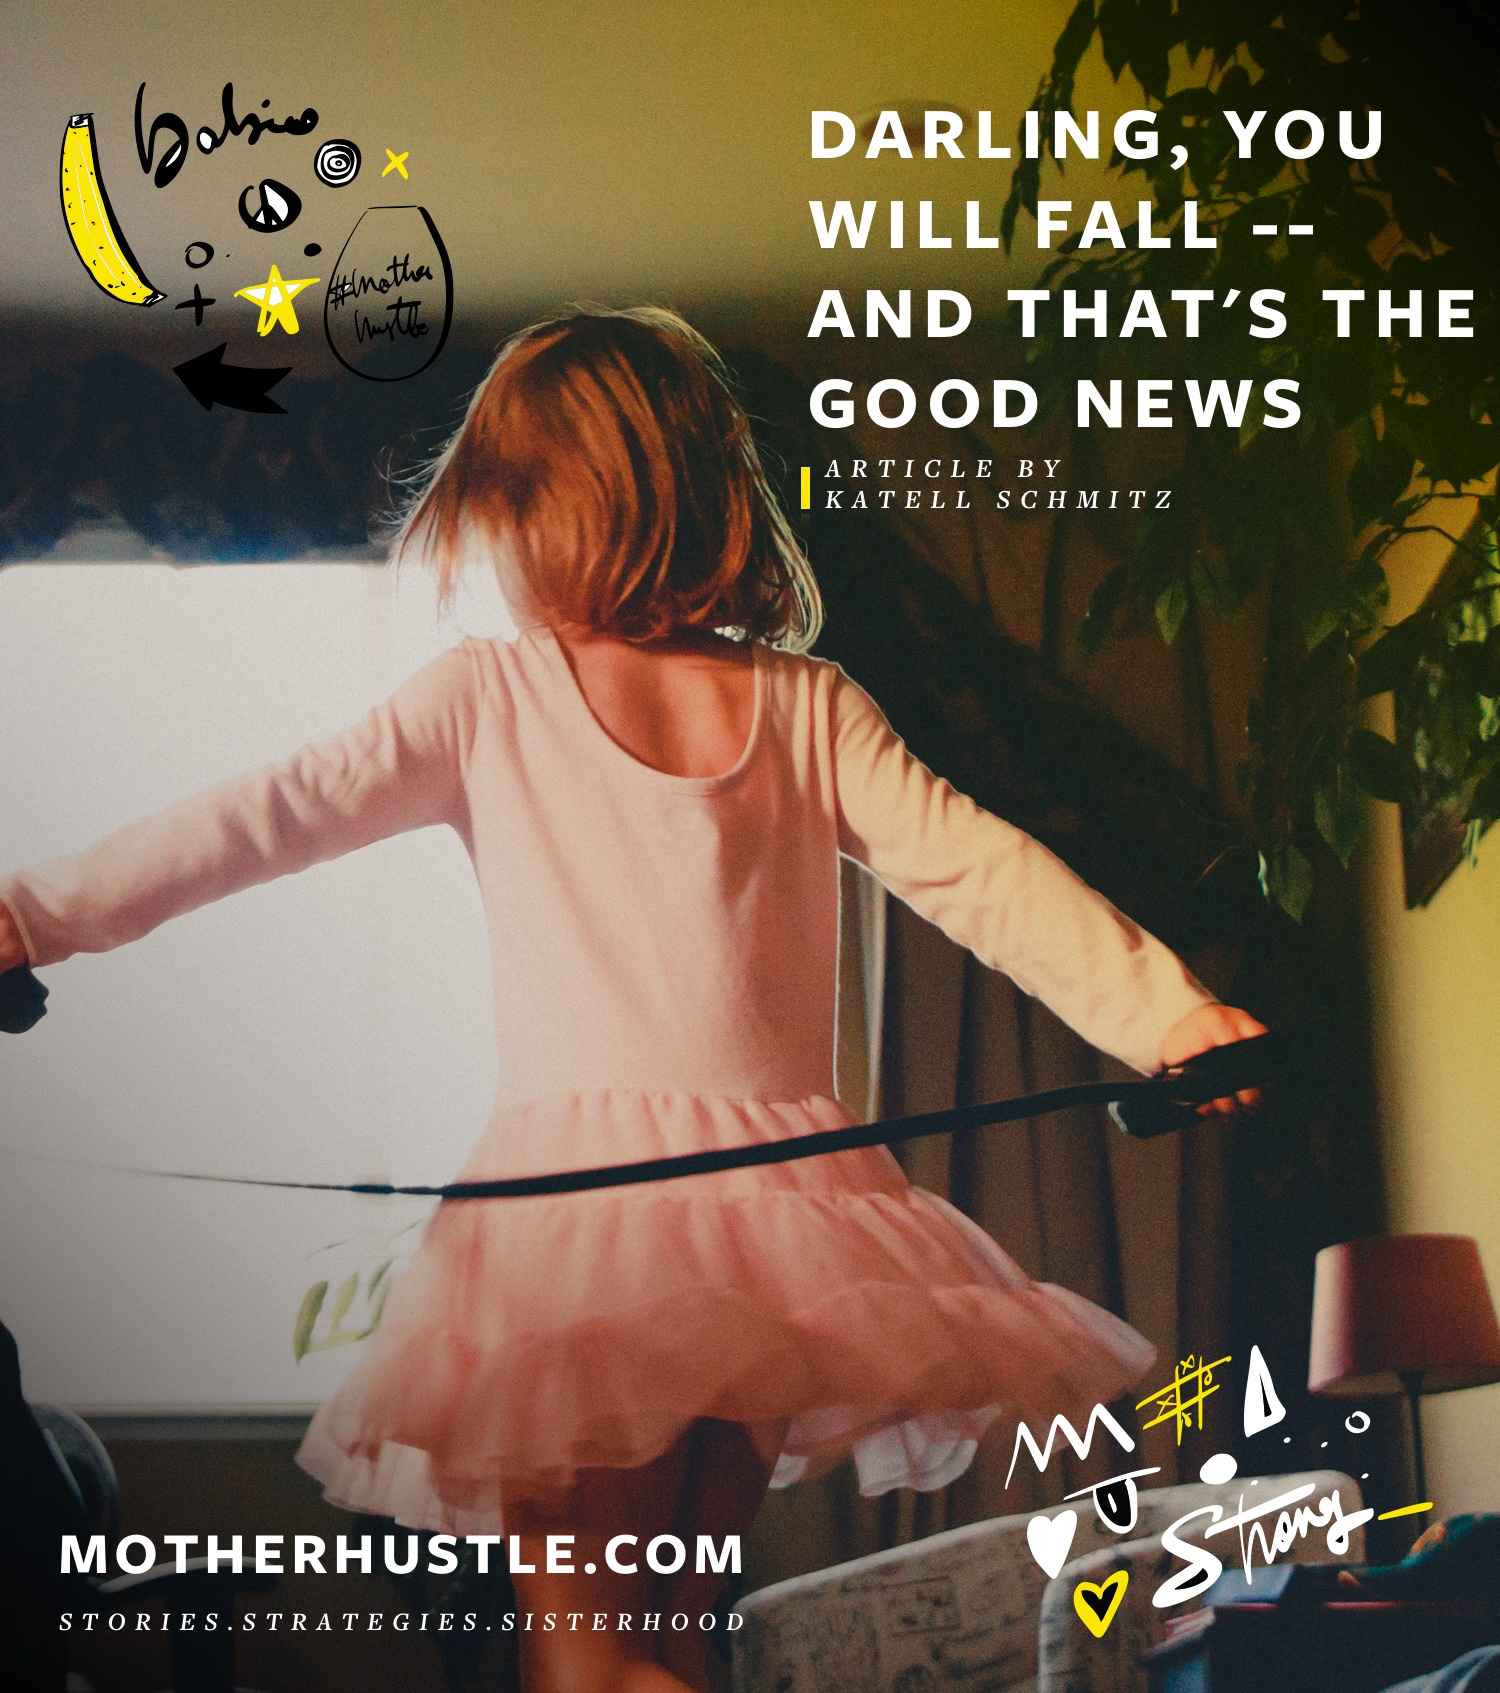 Well Darling, You Will Absolutely Fall - And That's The Good News -- Katell Schmitz MotherHustle